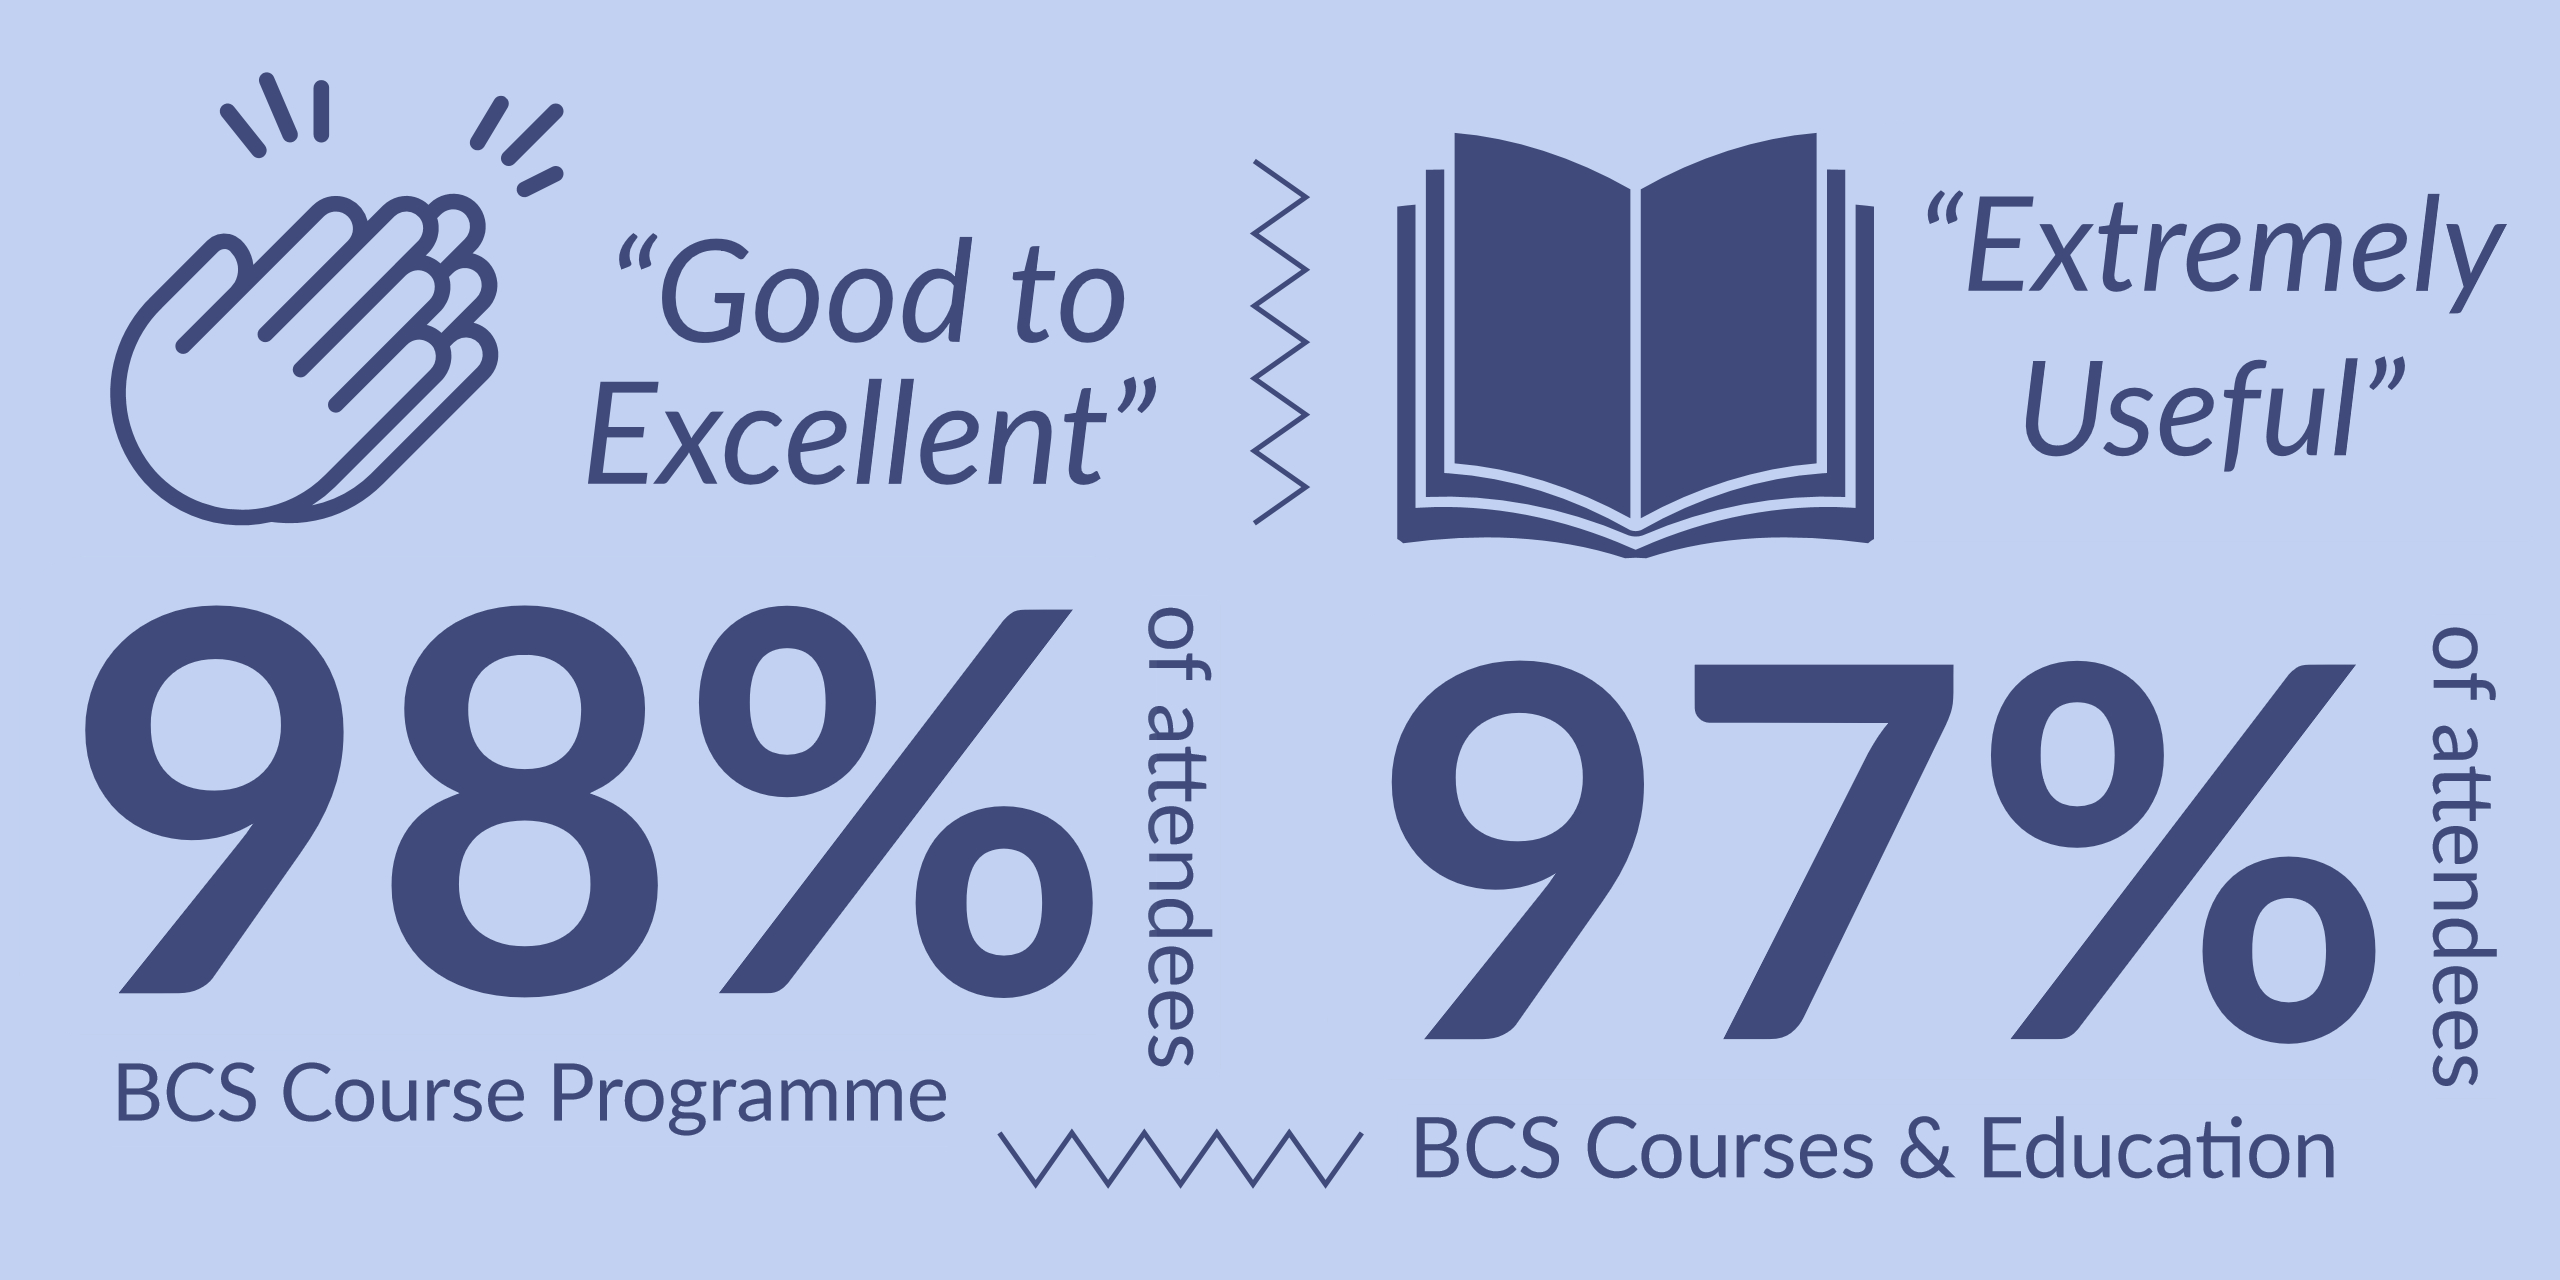 infographic showing 98% of attendees rated BCS courses programme as good to excellent.